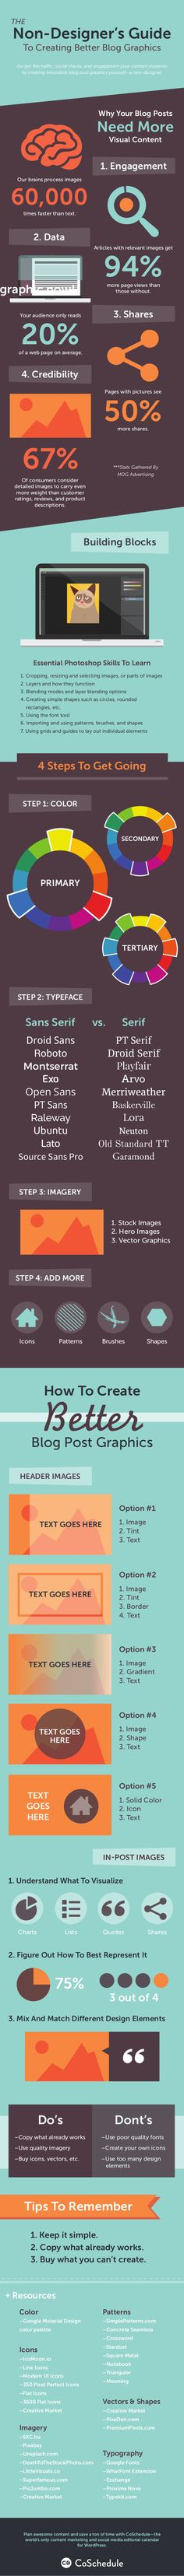 The non-designer's guide to creating better blog graphics